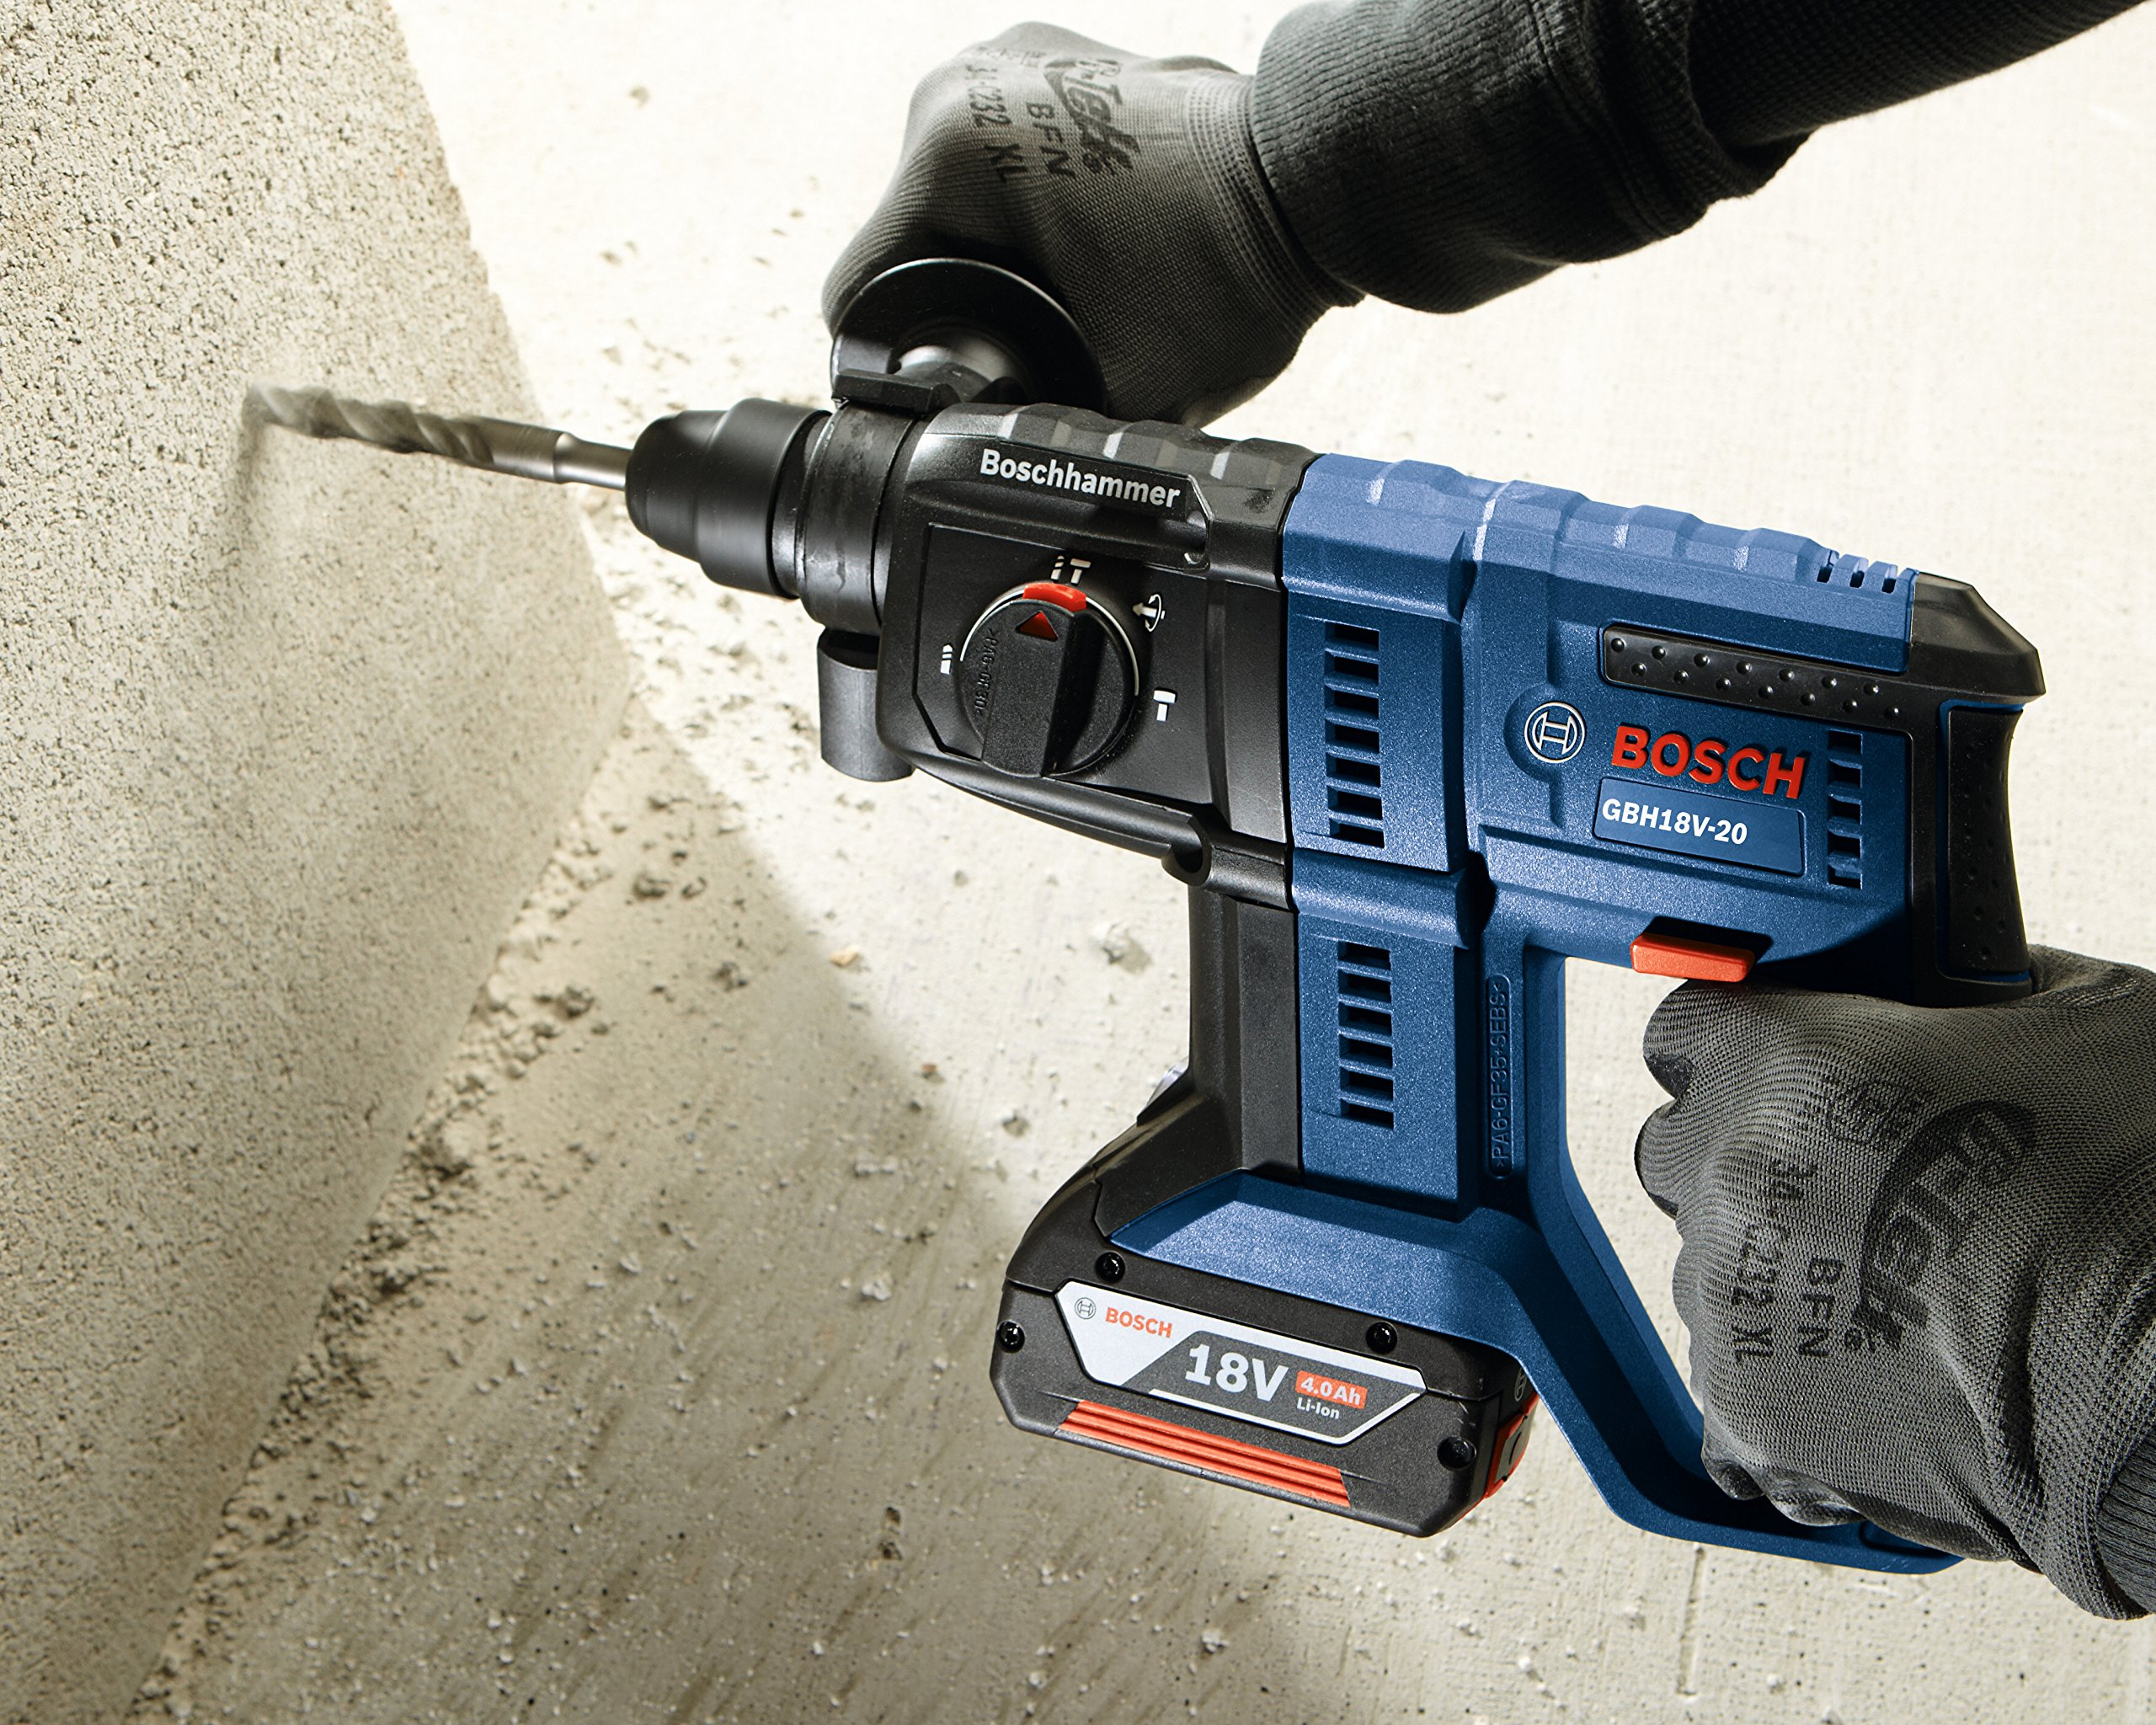 Bosch GBH18V-20N 18V 3/4 in. SDS-plus Rotary Hammer (Bare Tool) by Bosch (Image #3)